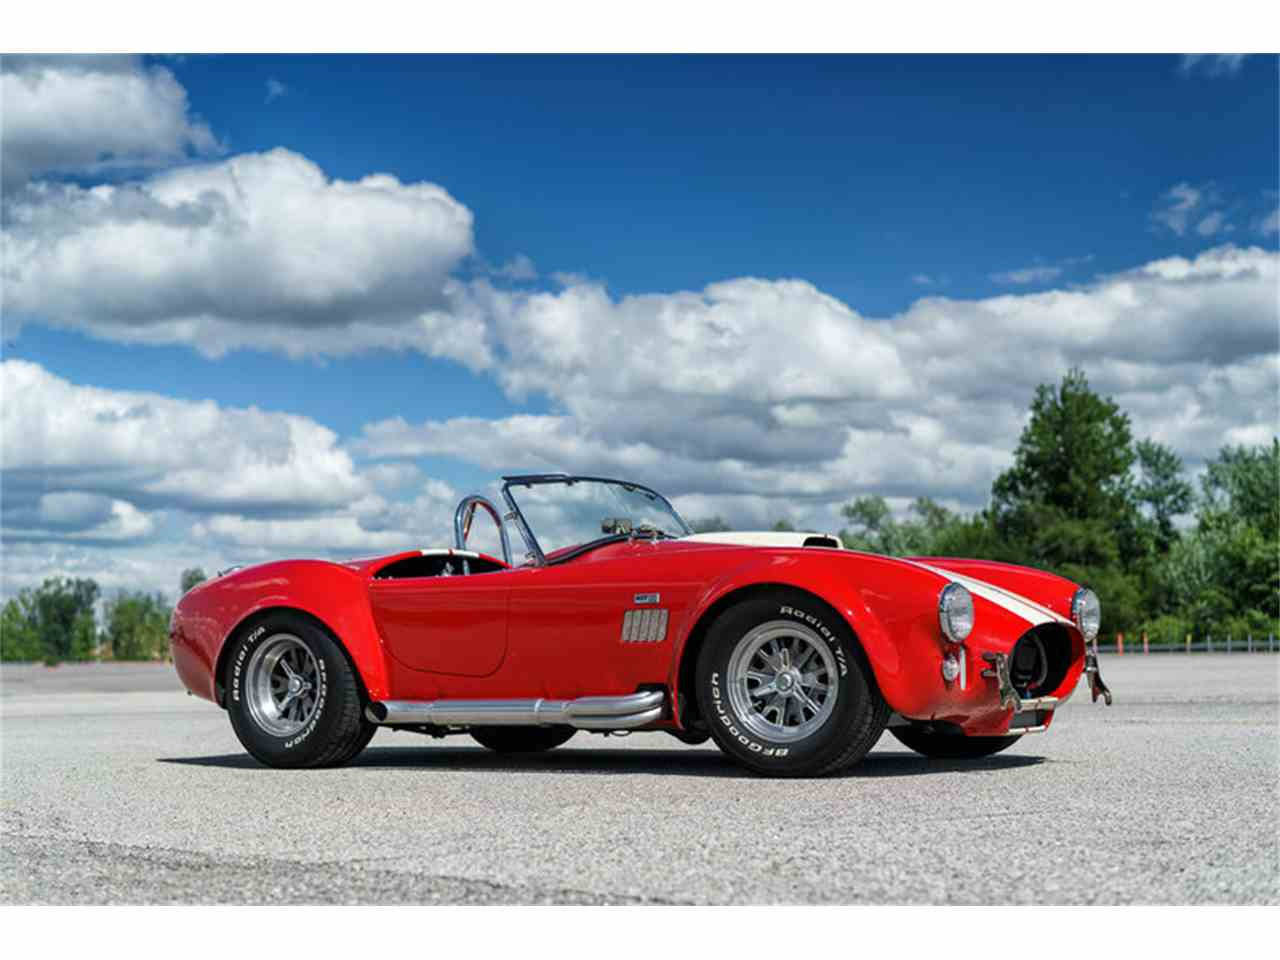 Large Picture of '65 Cobra located in St. Charles Missouri - $64,995.00 - I3CA